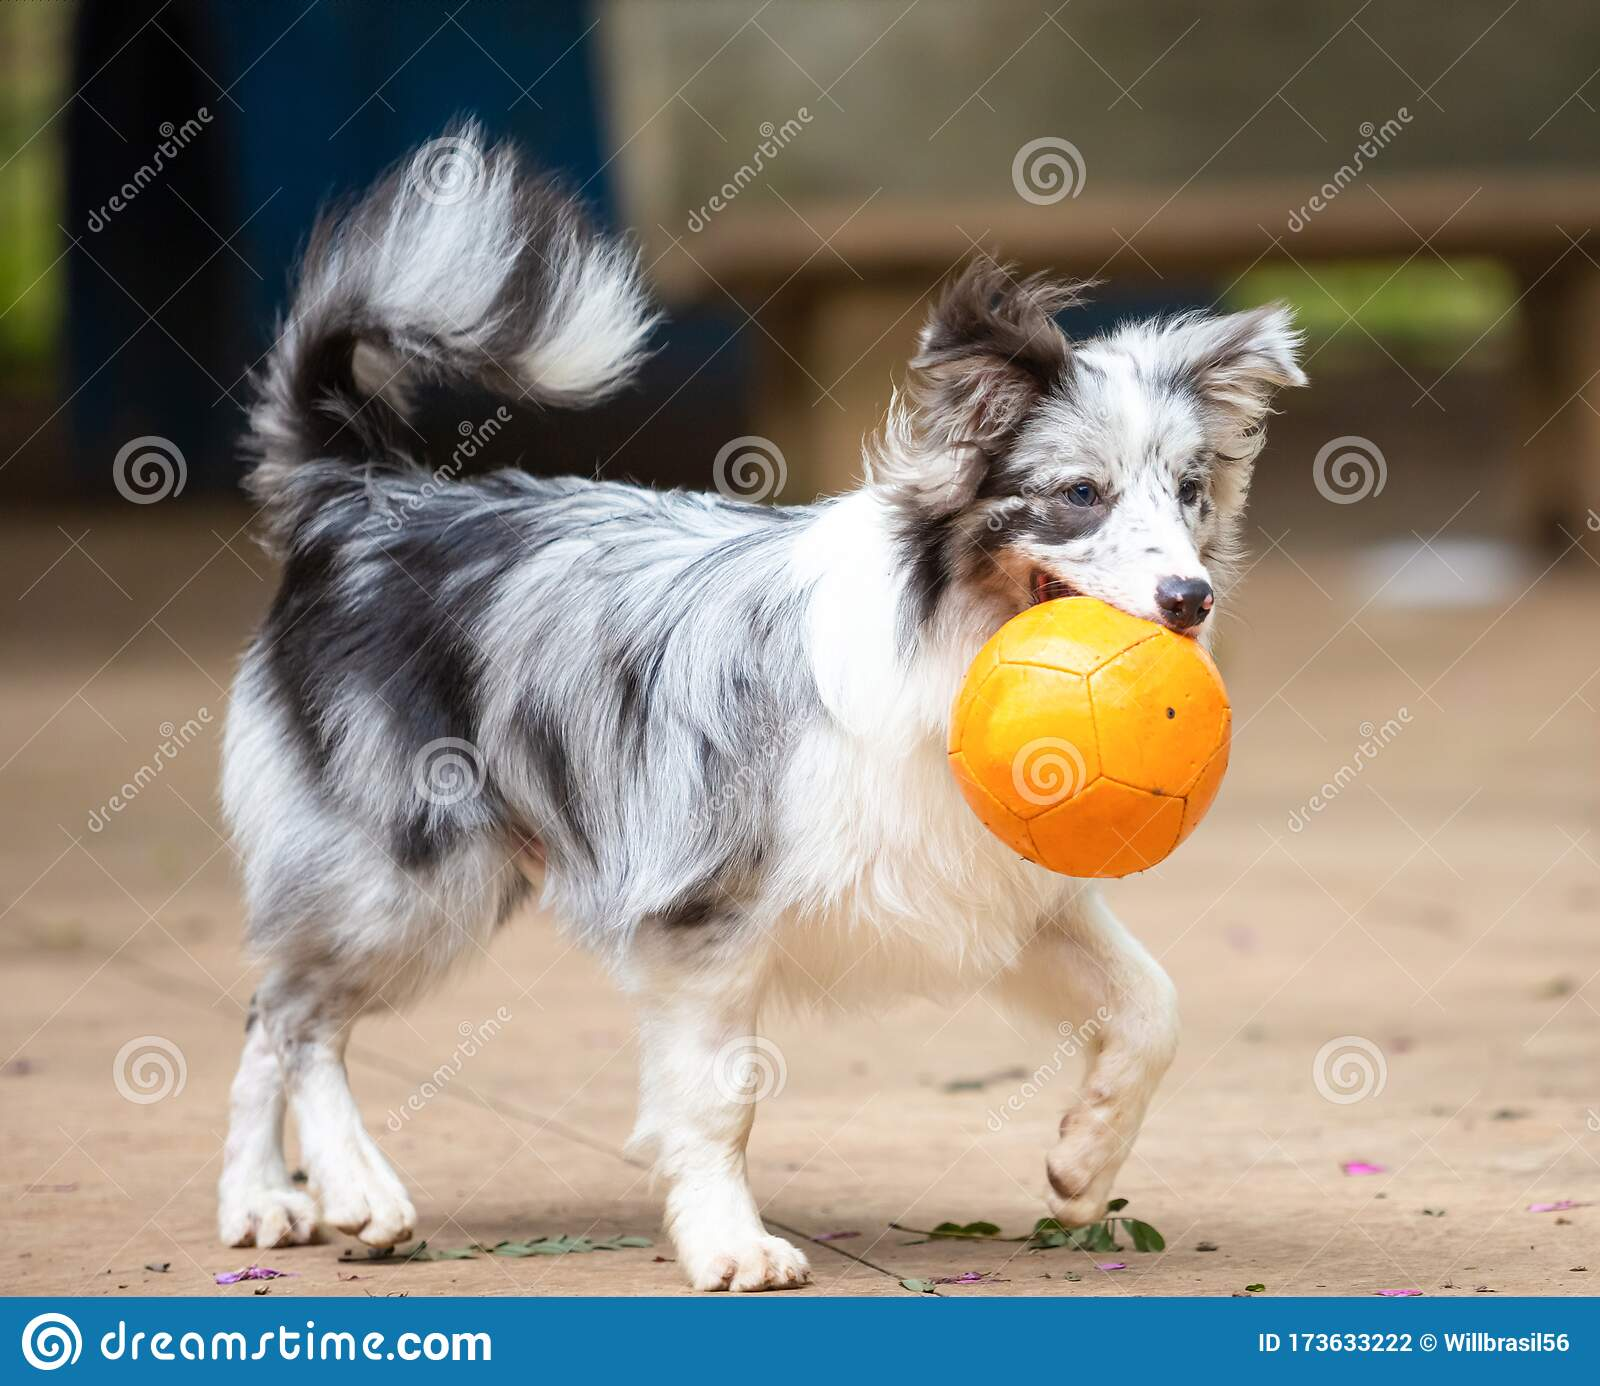 Blue Merle Border Collie Puppy Playing With A Ball In Its Mouth Stock Photo Image Of Face Adorable 173633222